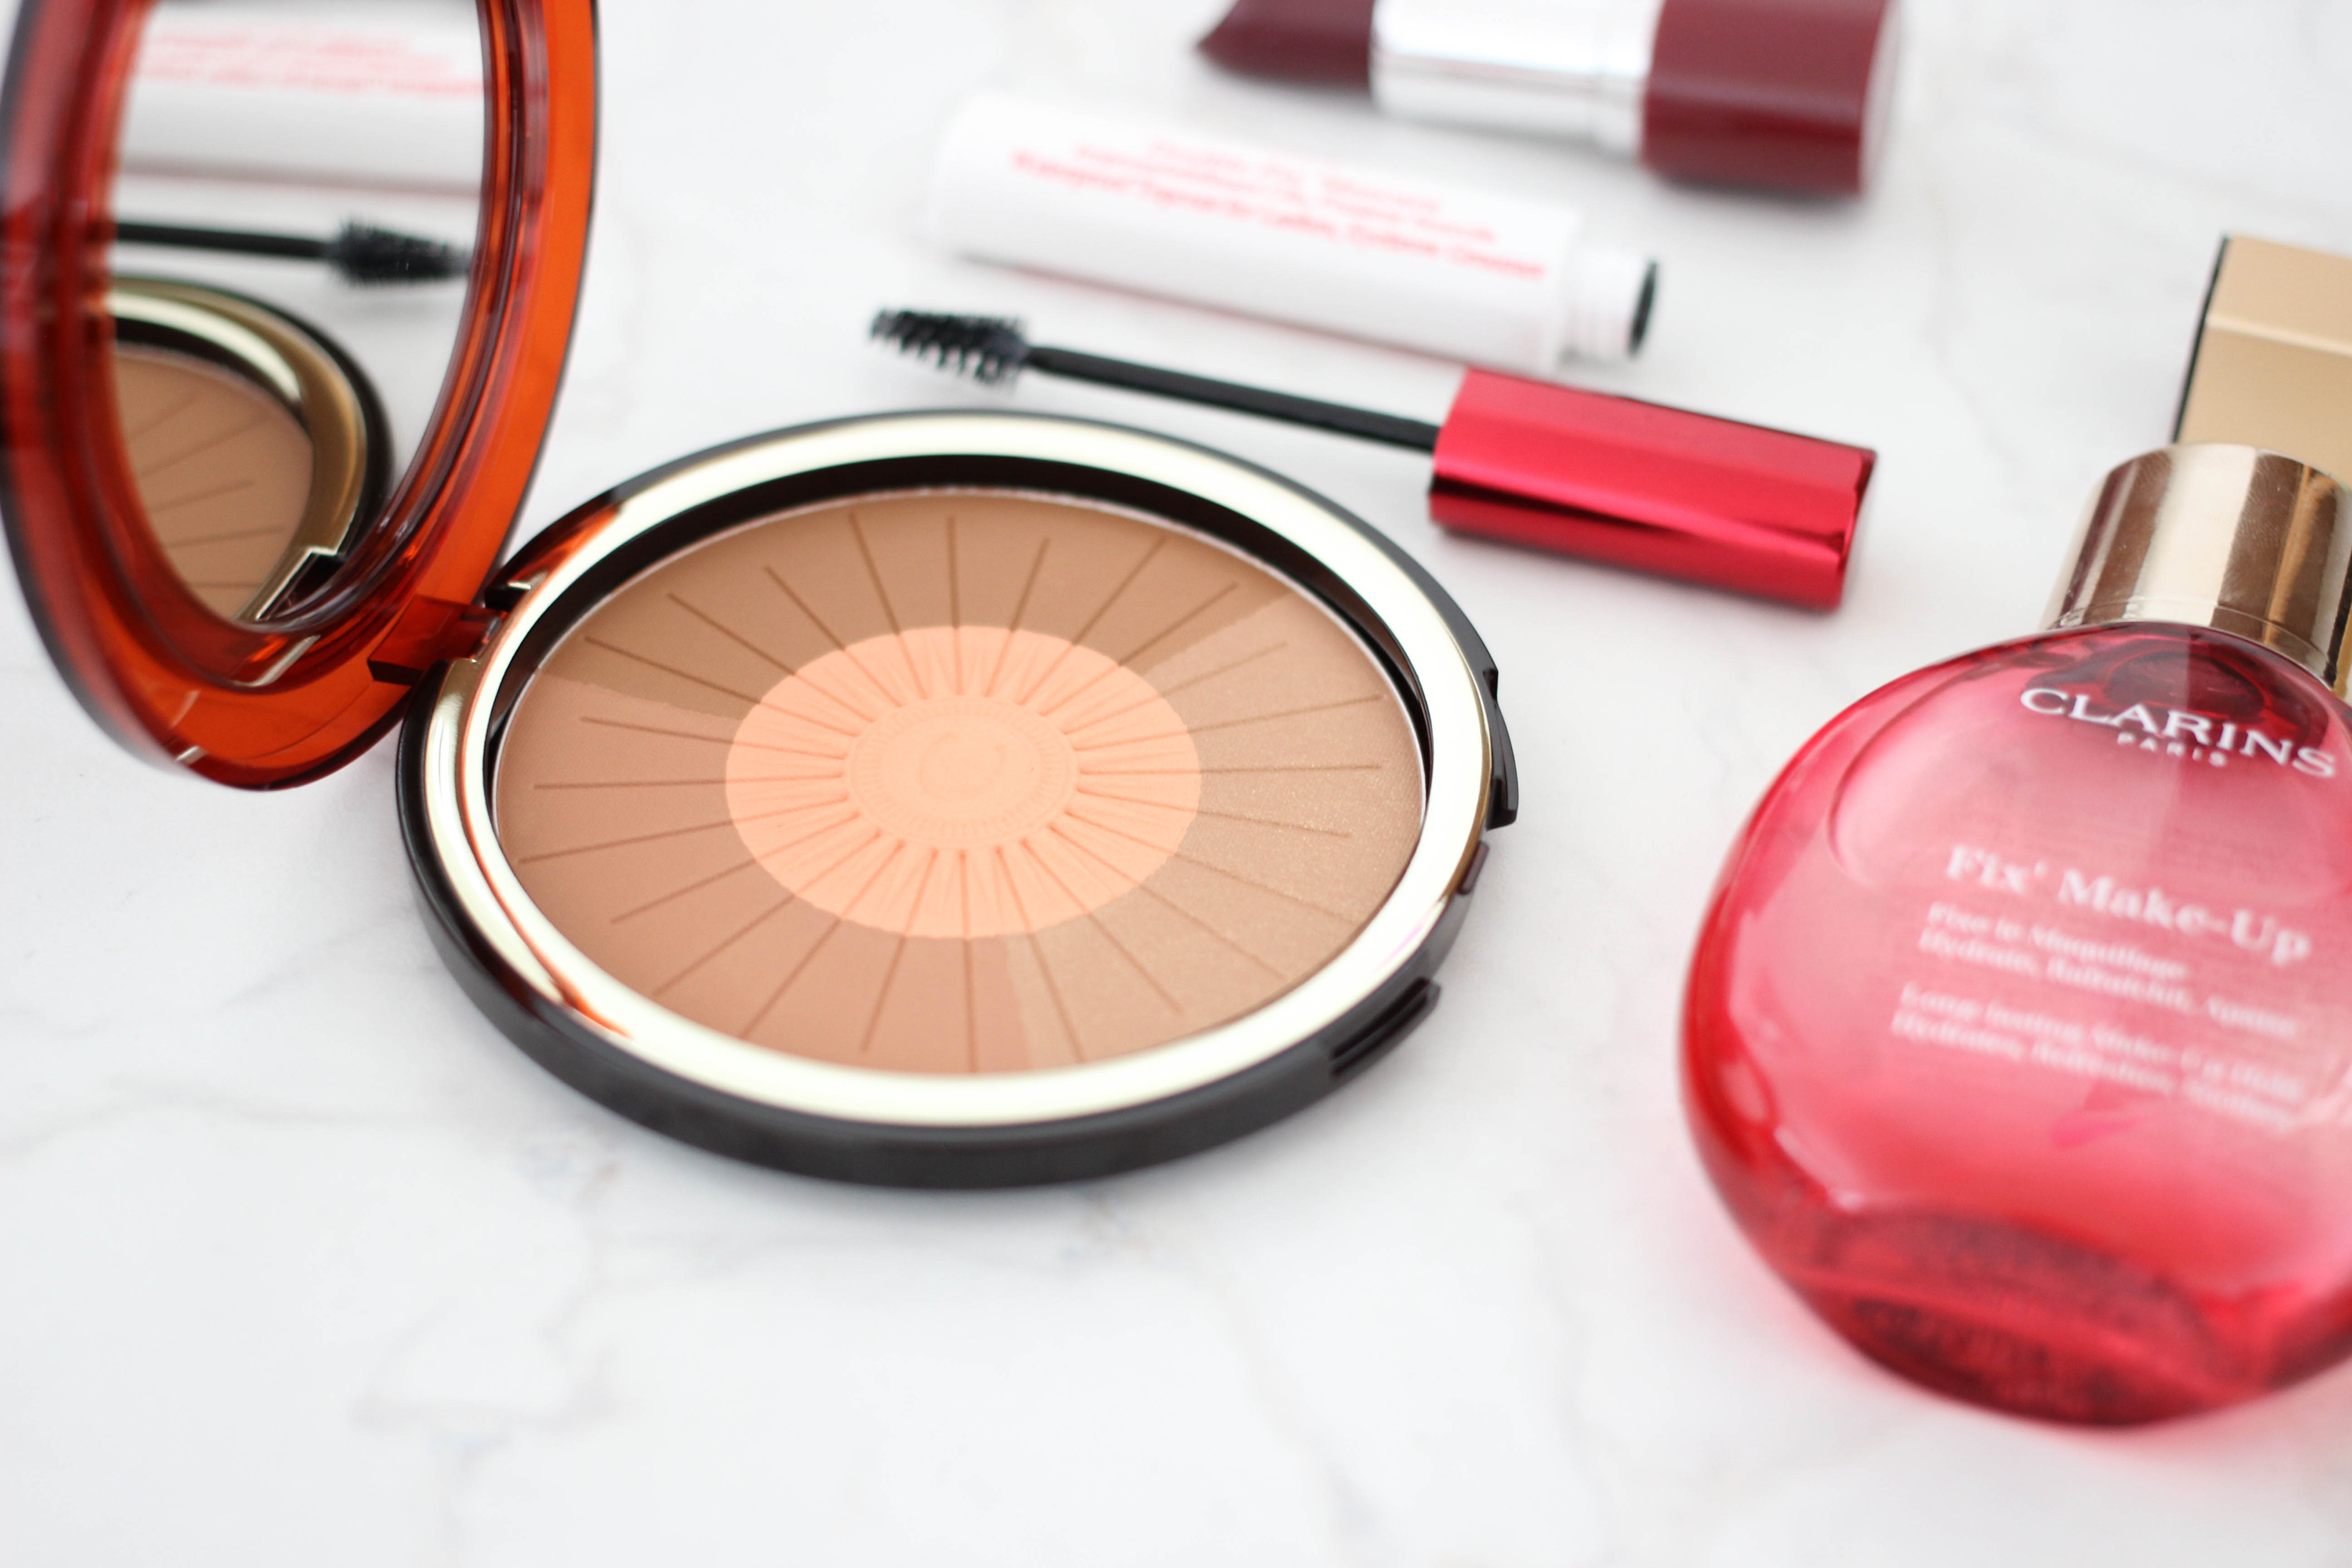 Clarins Summer Collection Bronze & Blush Compact